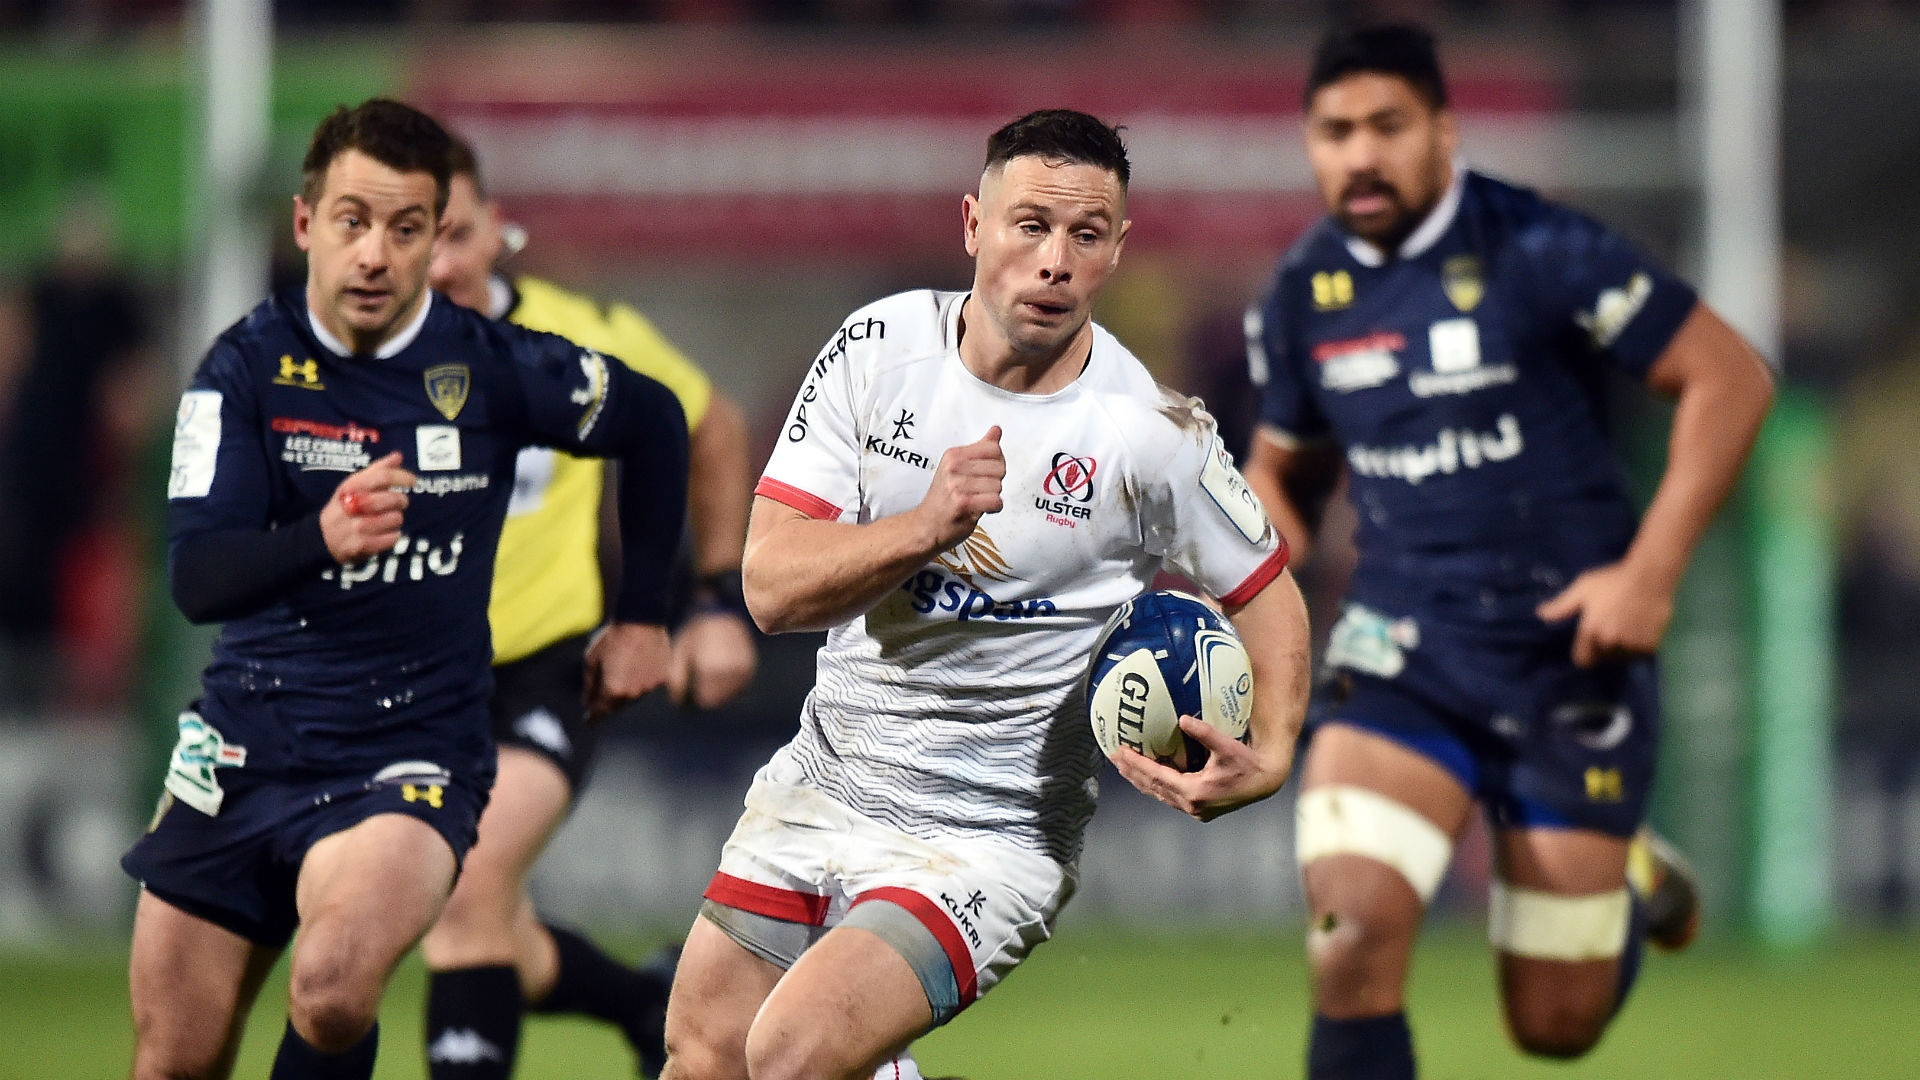 Ulster made it two wins from two in this season's European Champions Cup by overcoming Pool 3 rivals Clermont Auvergne.